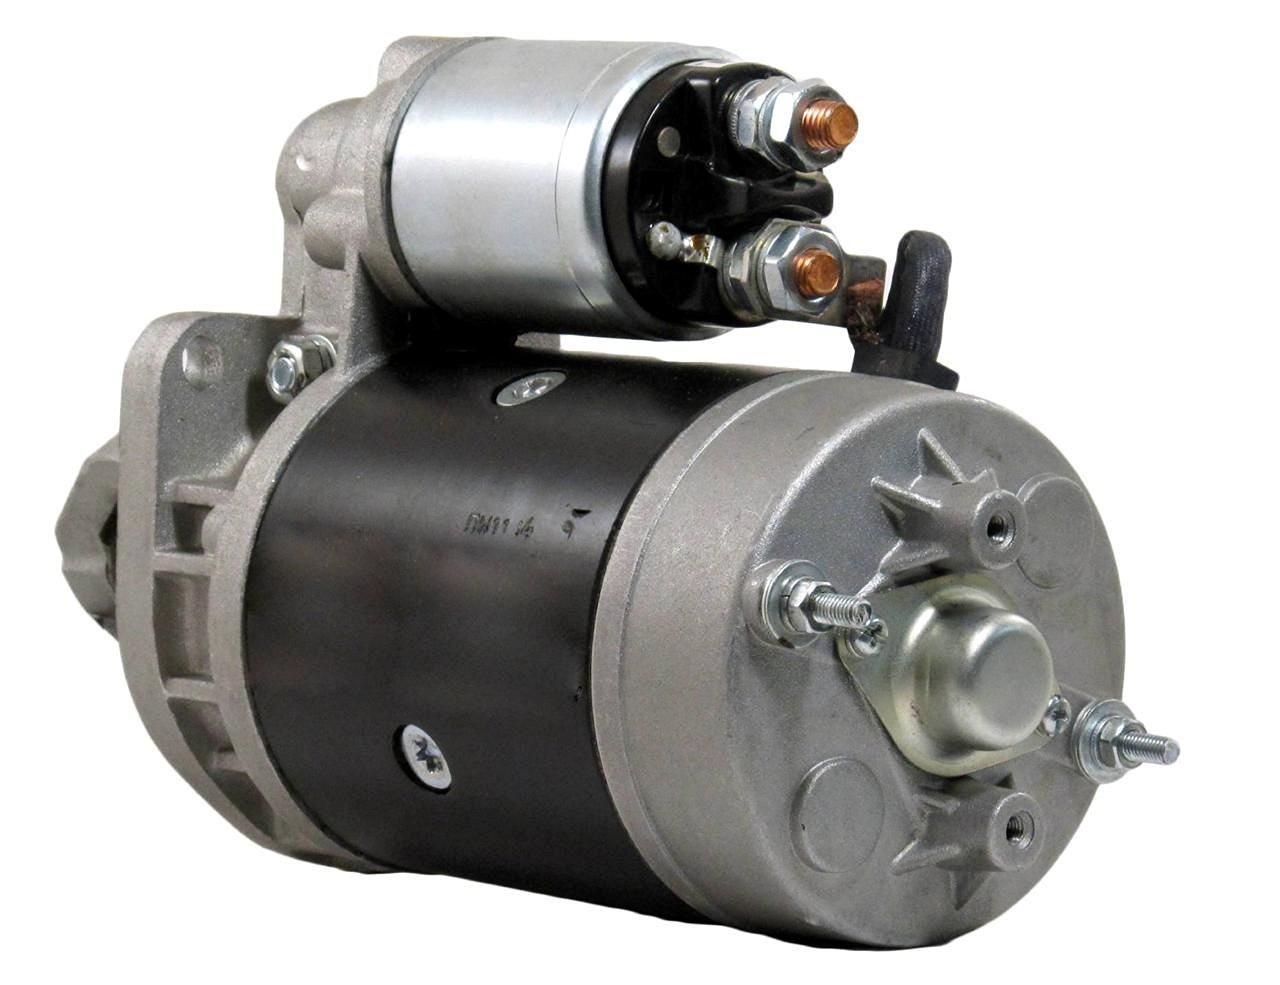 NEW STARTER MOTOR FITS DEUTZ MARINE ENGINE BF6L913 S0921 IS0619 0-001-365-